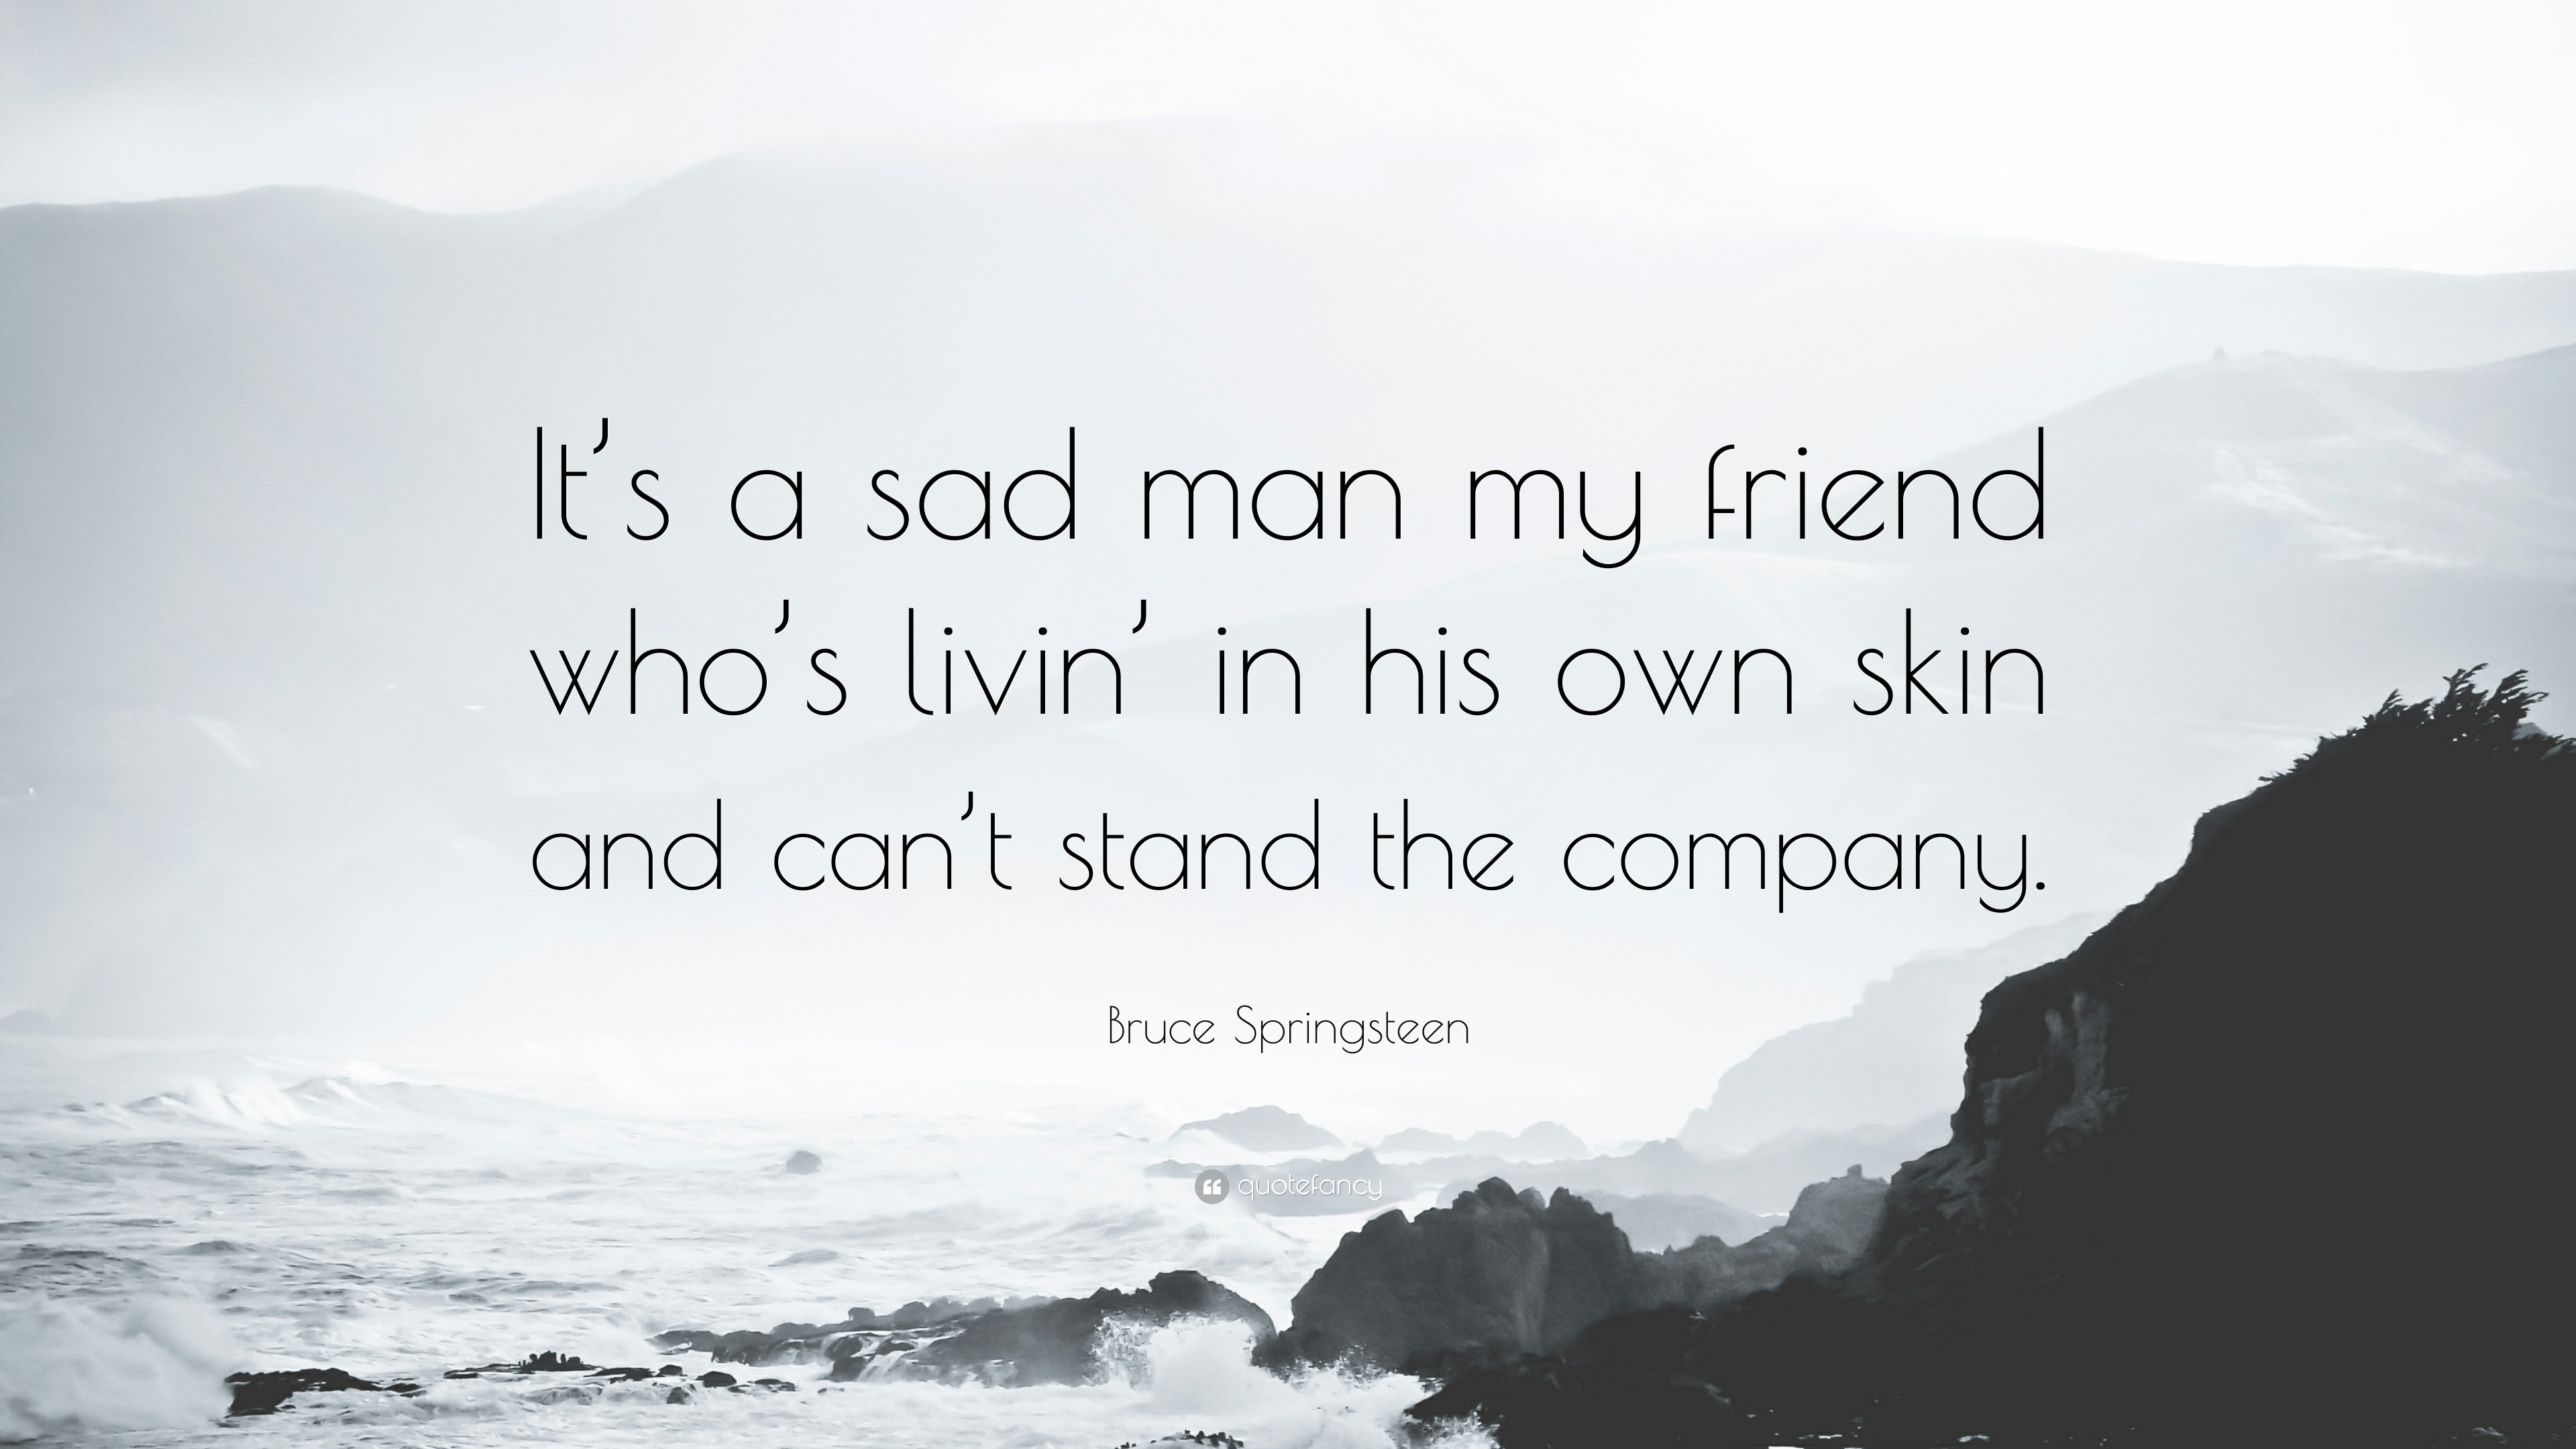 Bruce springsteen quote its a sad man my friend whos livin in 12 wallpapers voltagebd Choice Image